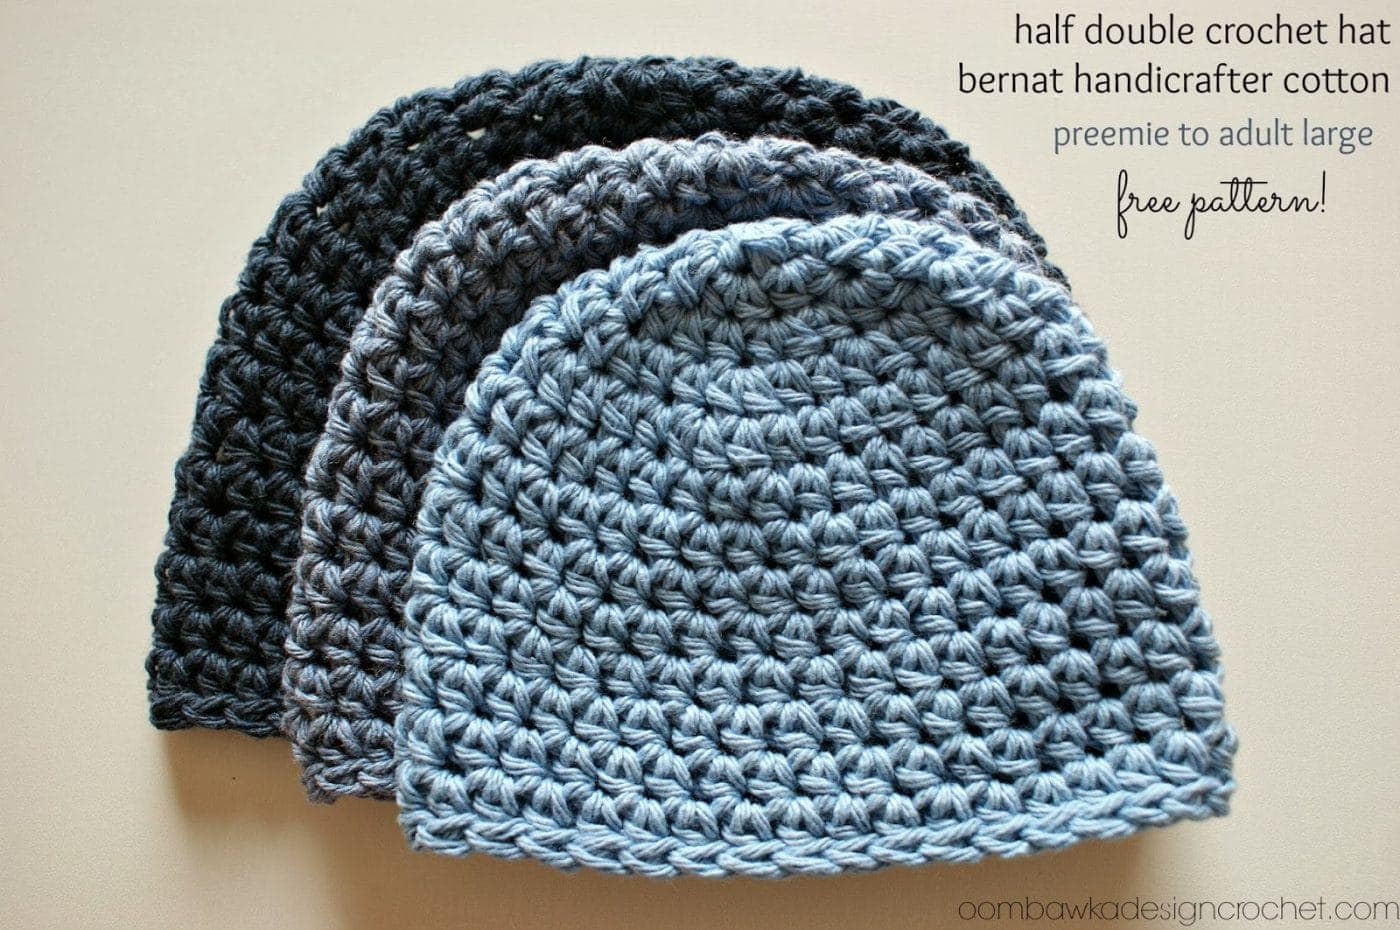 Crochet Patterns Using Thread : ... Double Crochet Hat Pattern #2 Free Pattern ? Oombawka Design Crochet